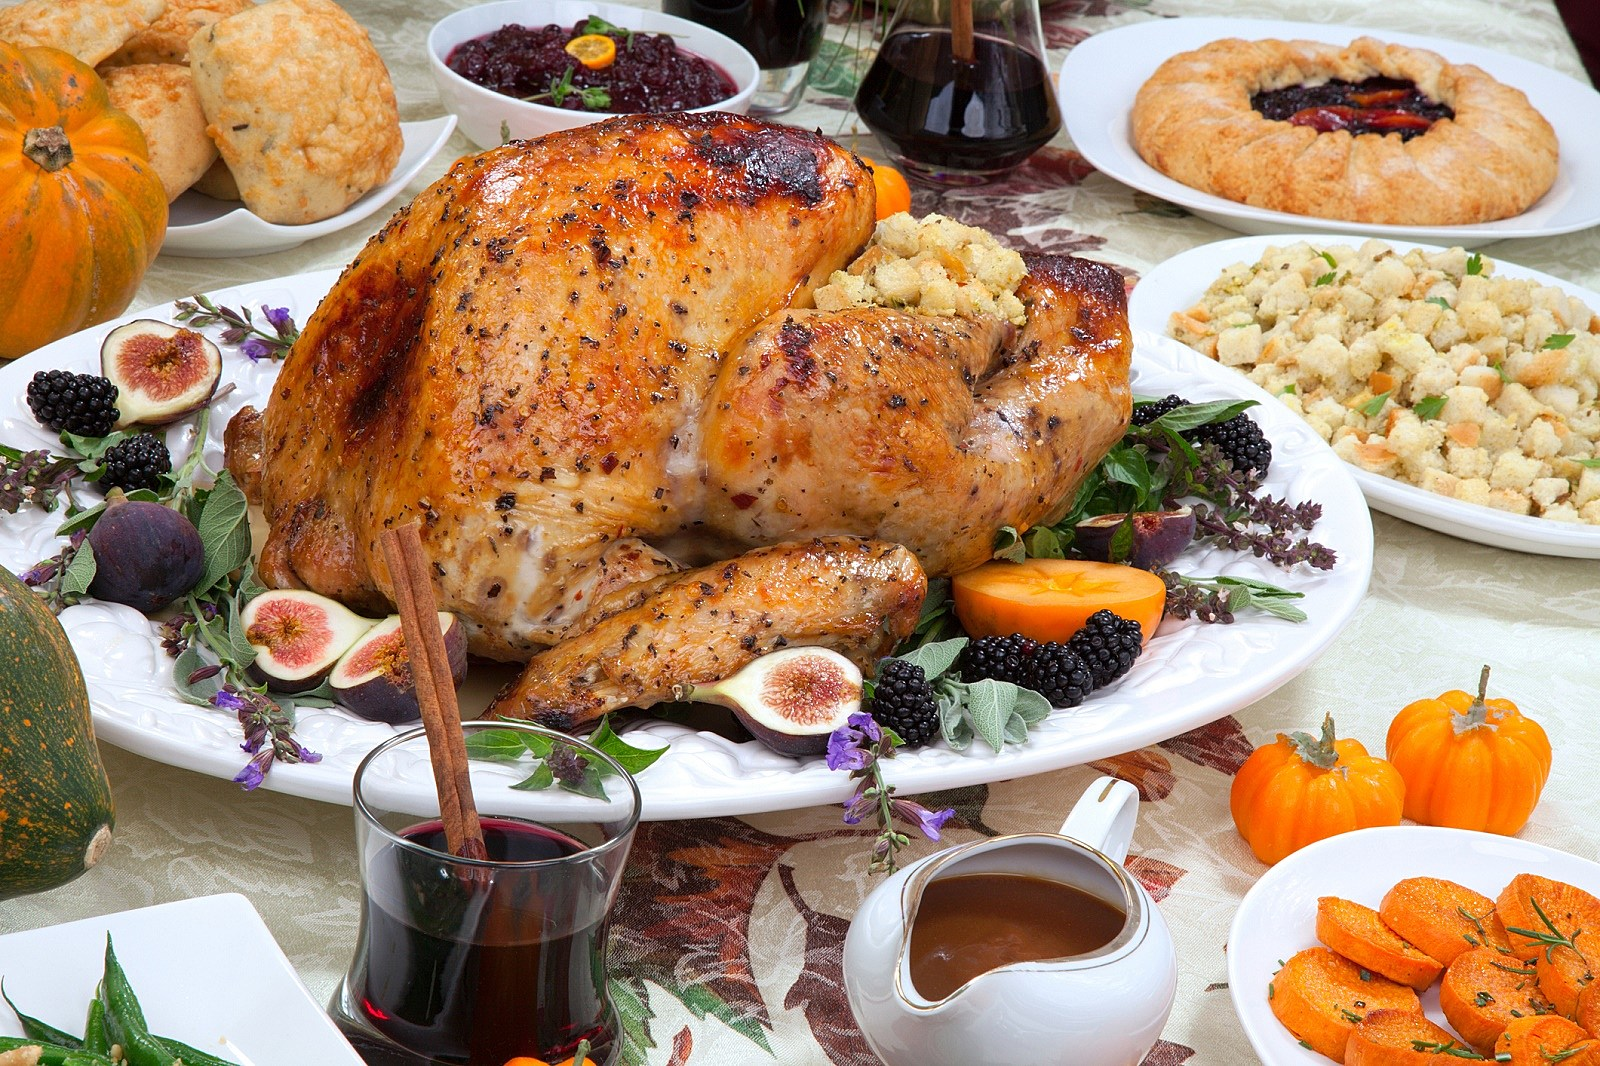 thanksgiving food pictures - HD 1200×800